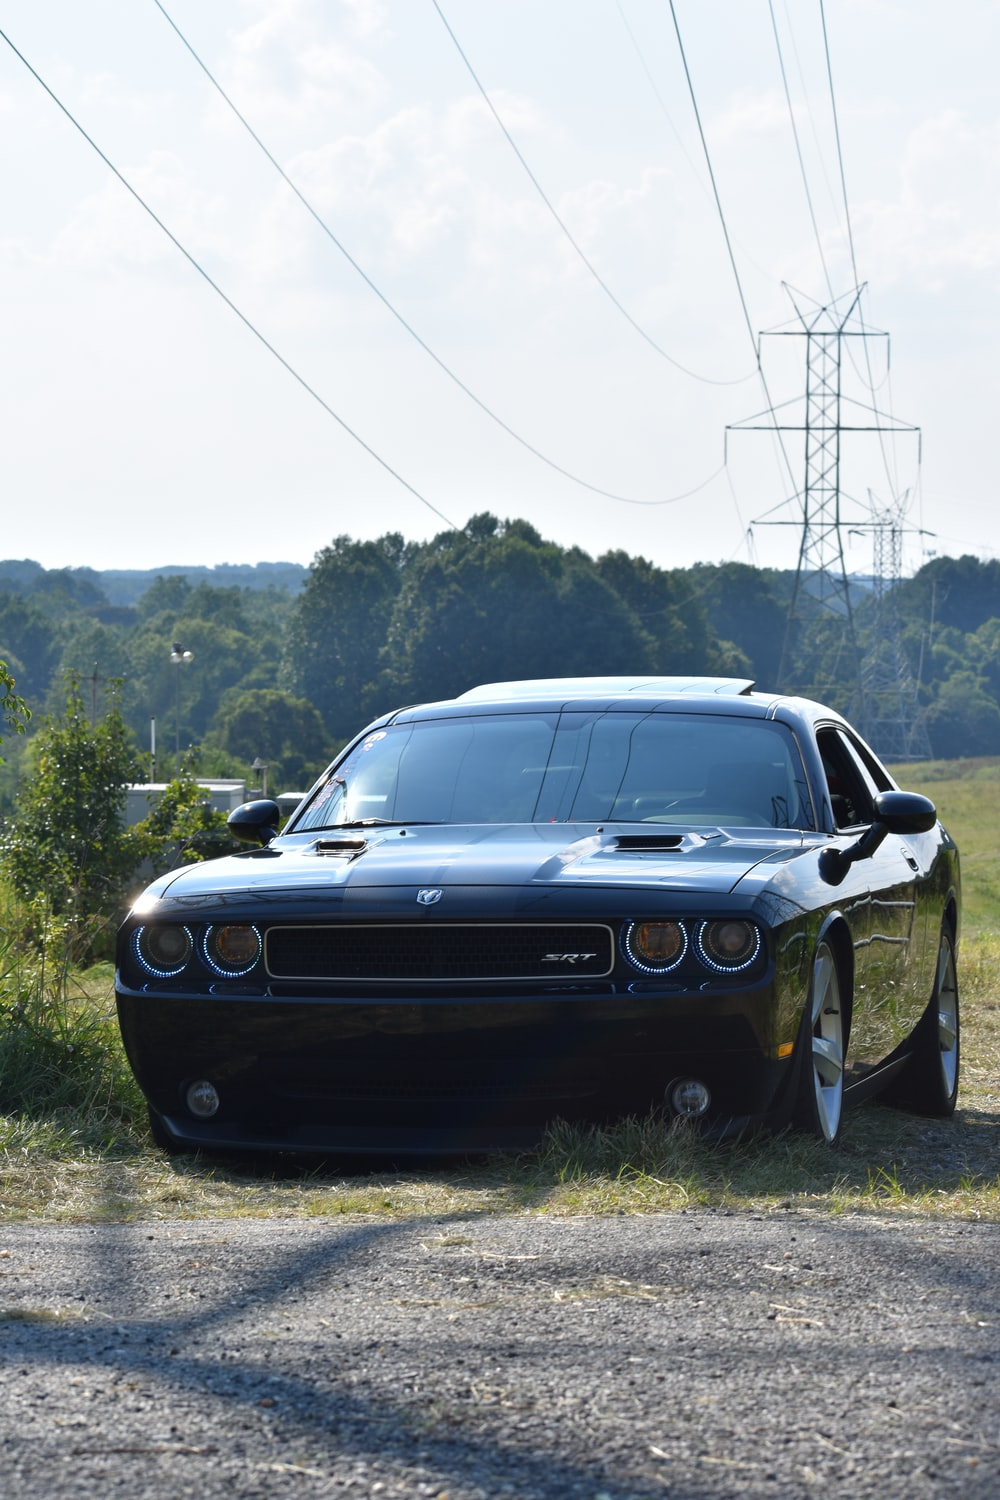 black coupe parked near grass field during daytime